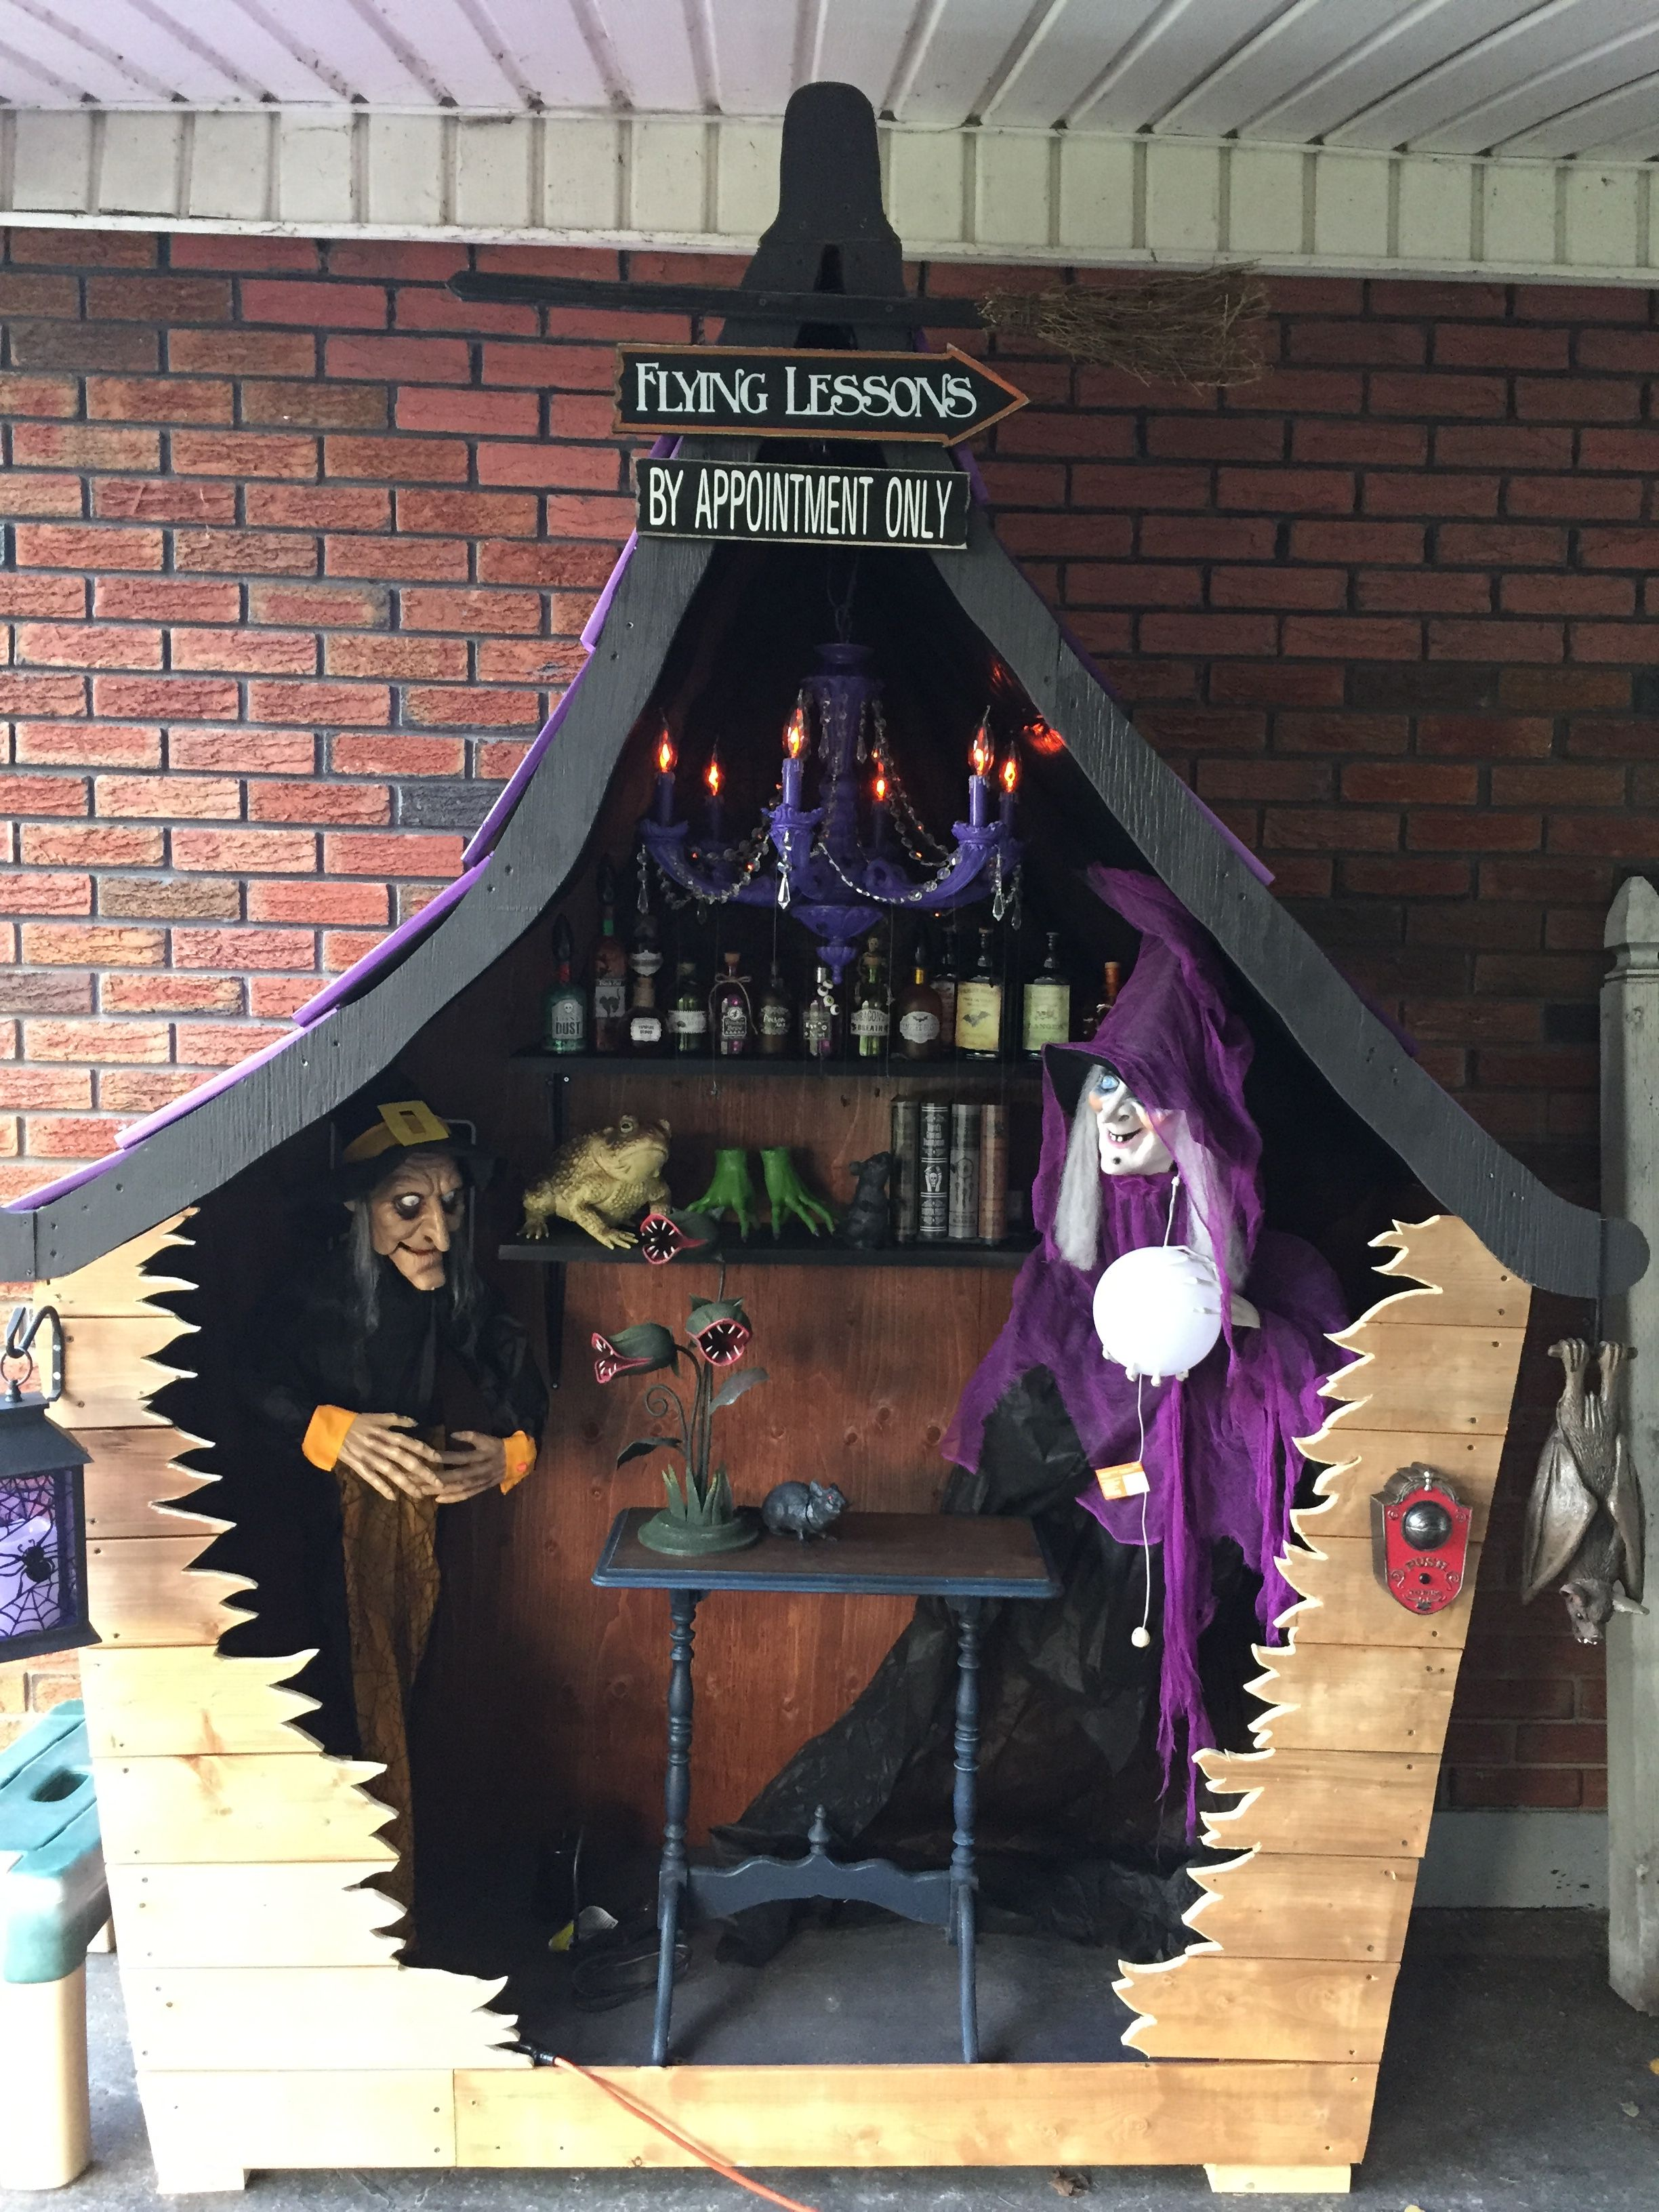 Halloween Decorations Ideas 2019 Pinterest My witch house. Inspiration from another one on Pinterest